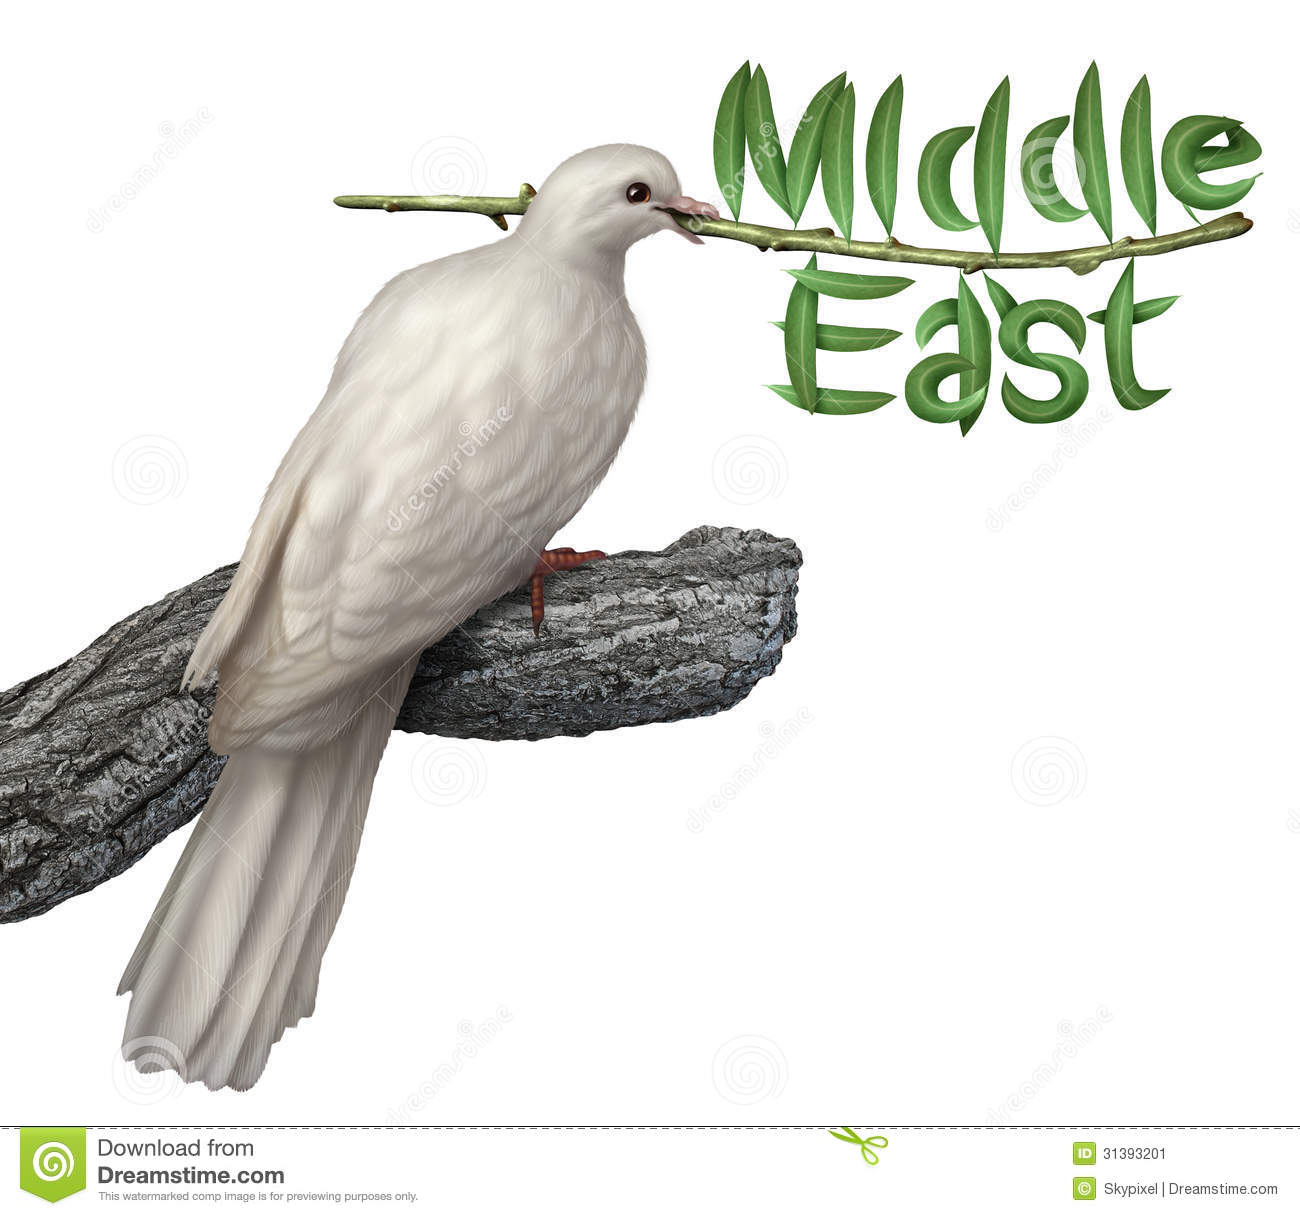 middle eastern singles in white springs Where single middle east christians meet middeeastchristianscom where single middle east connecting singles connecting single middle east christians.